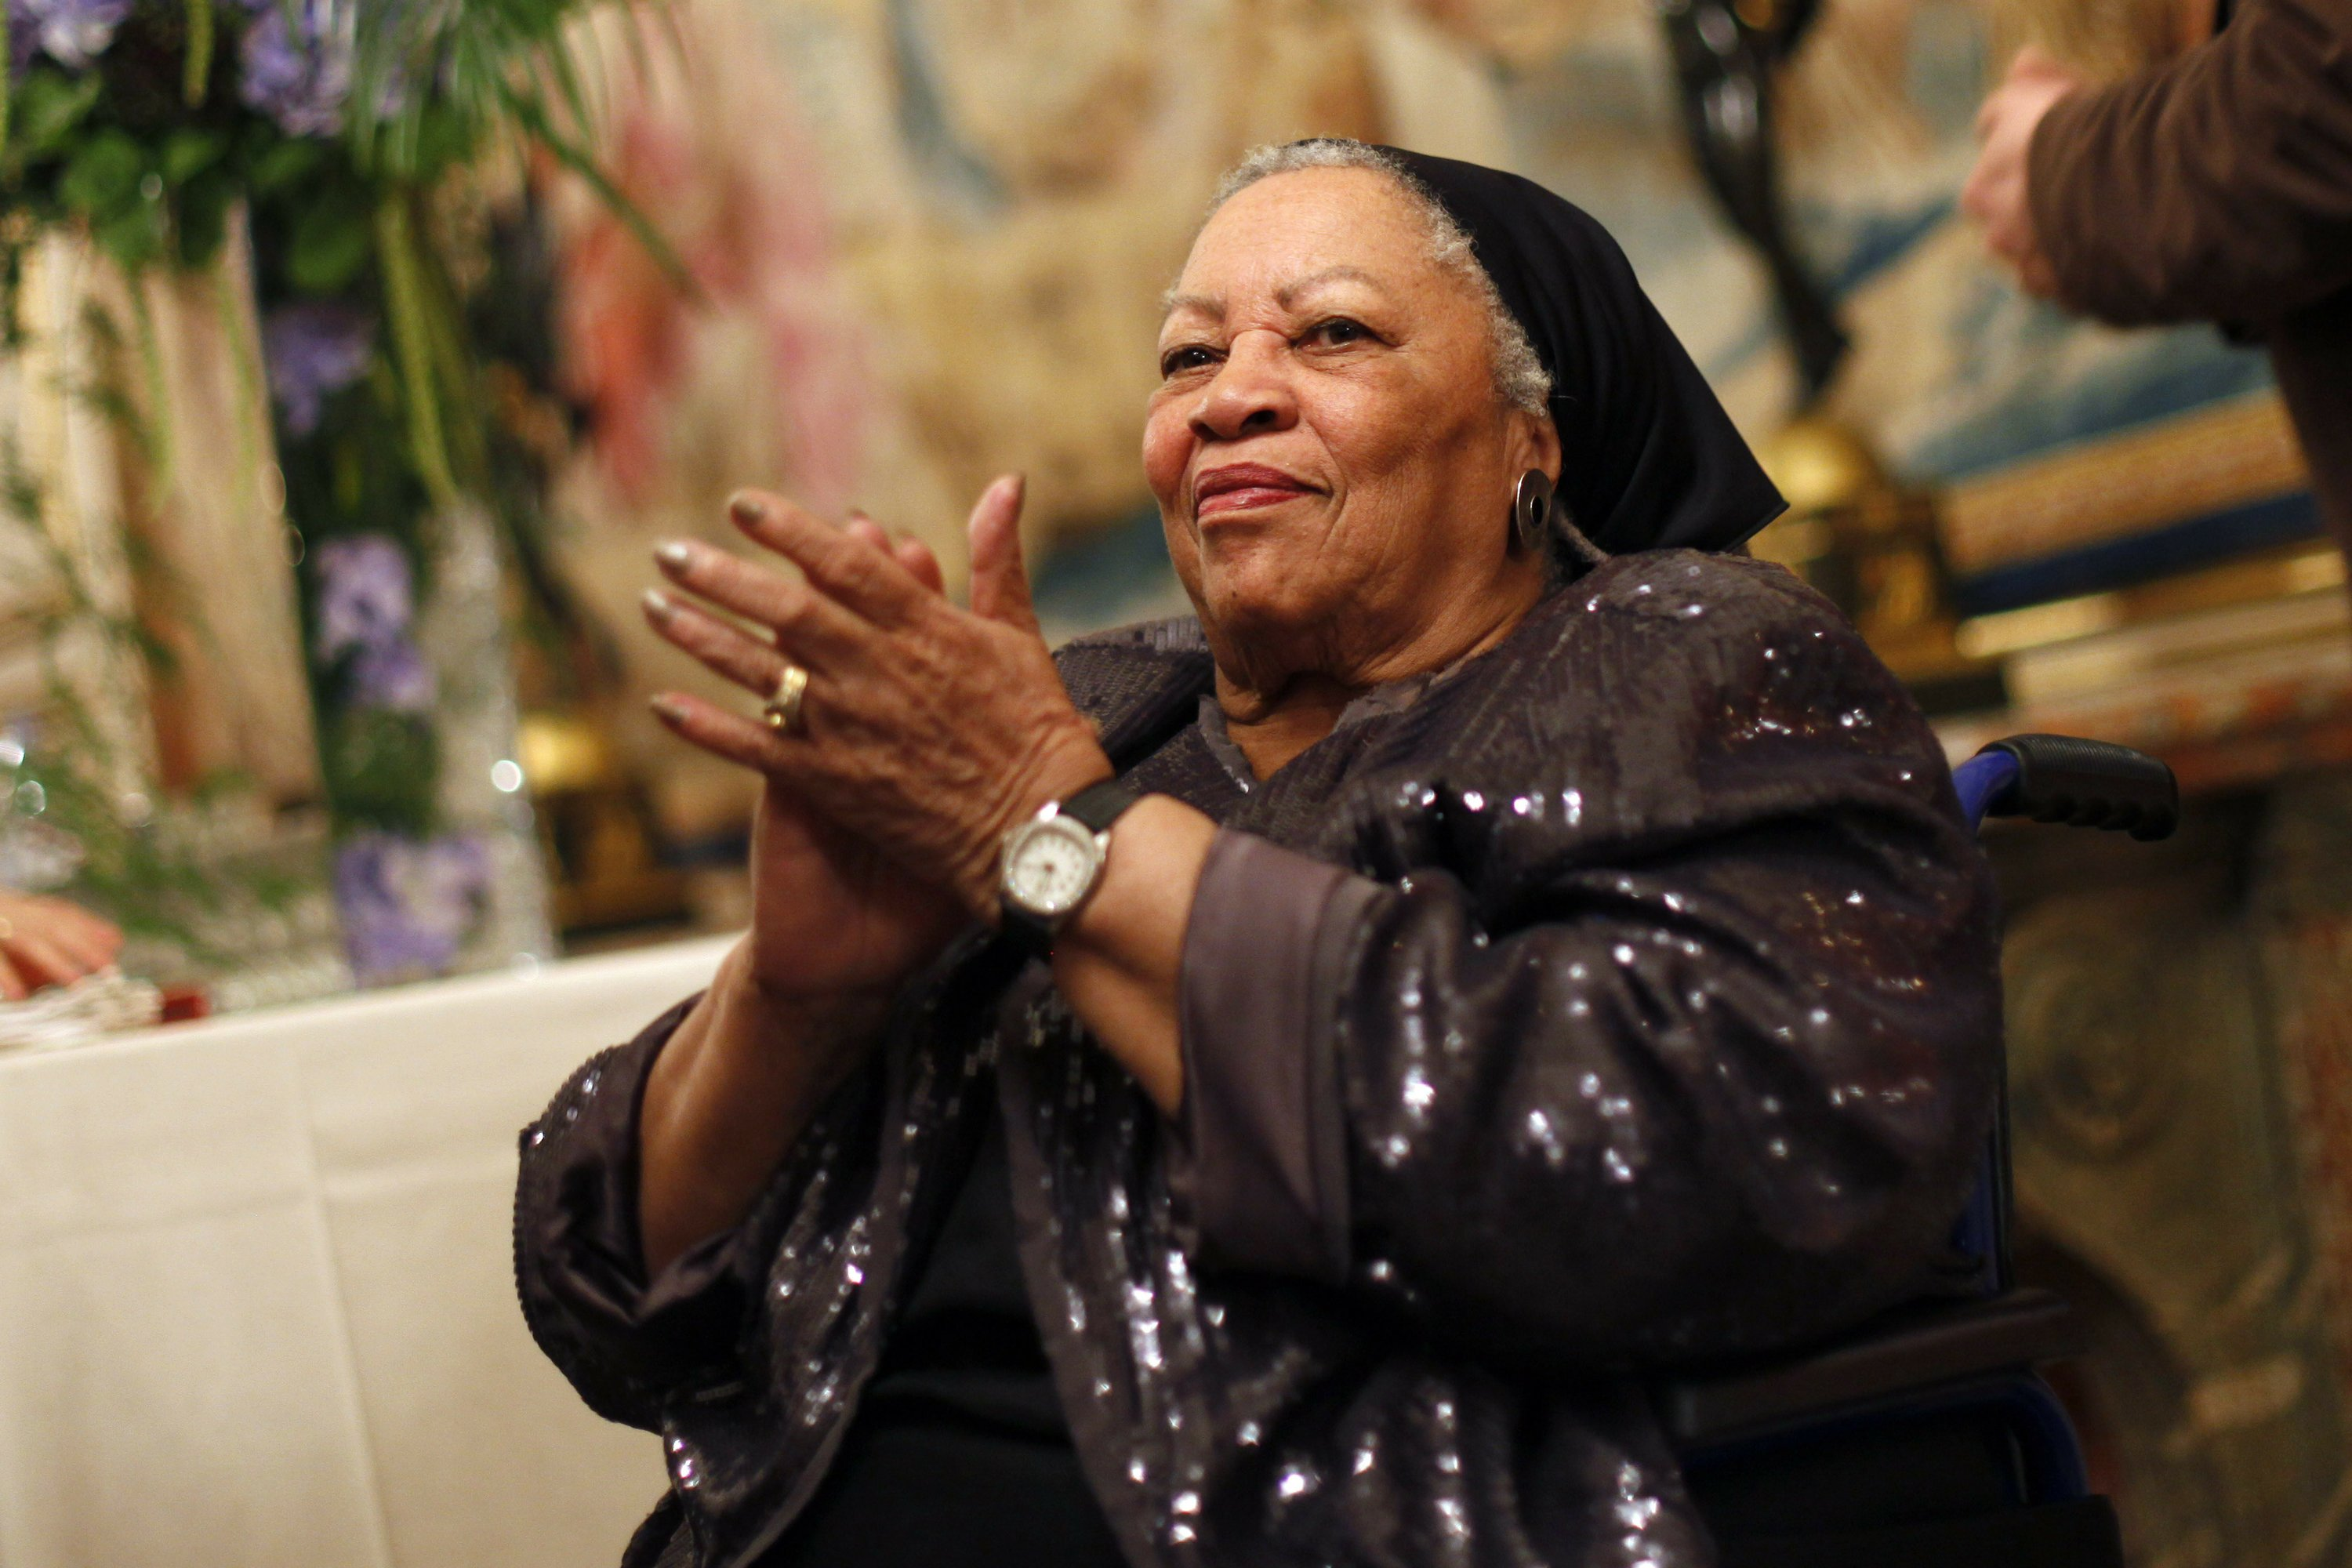 Book of Toni Morrison quotations is coming out in December